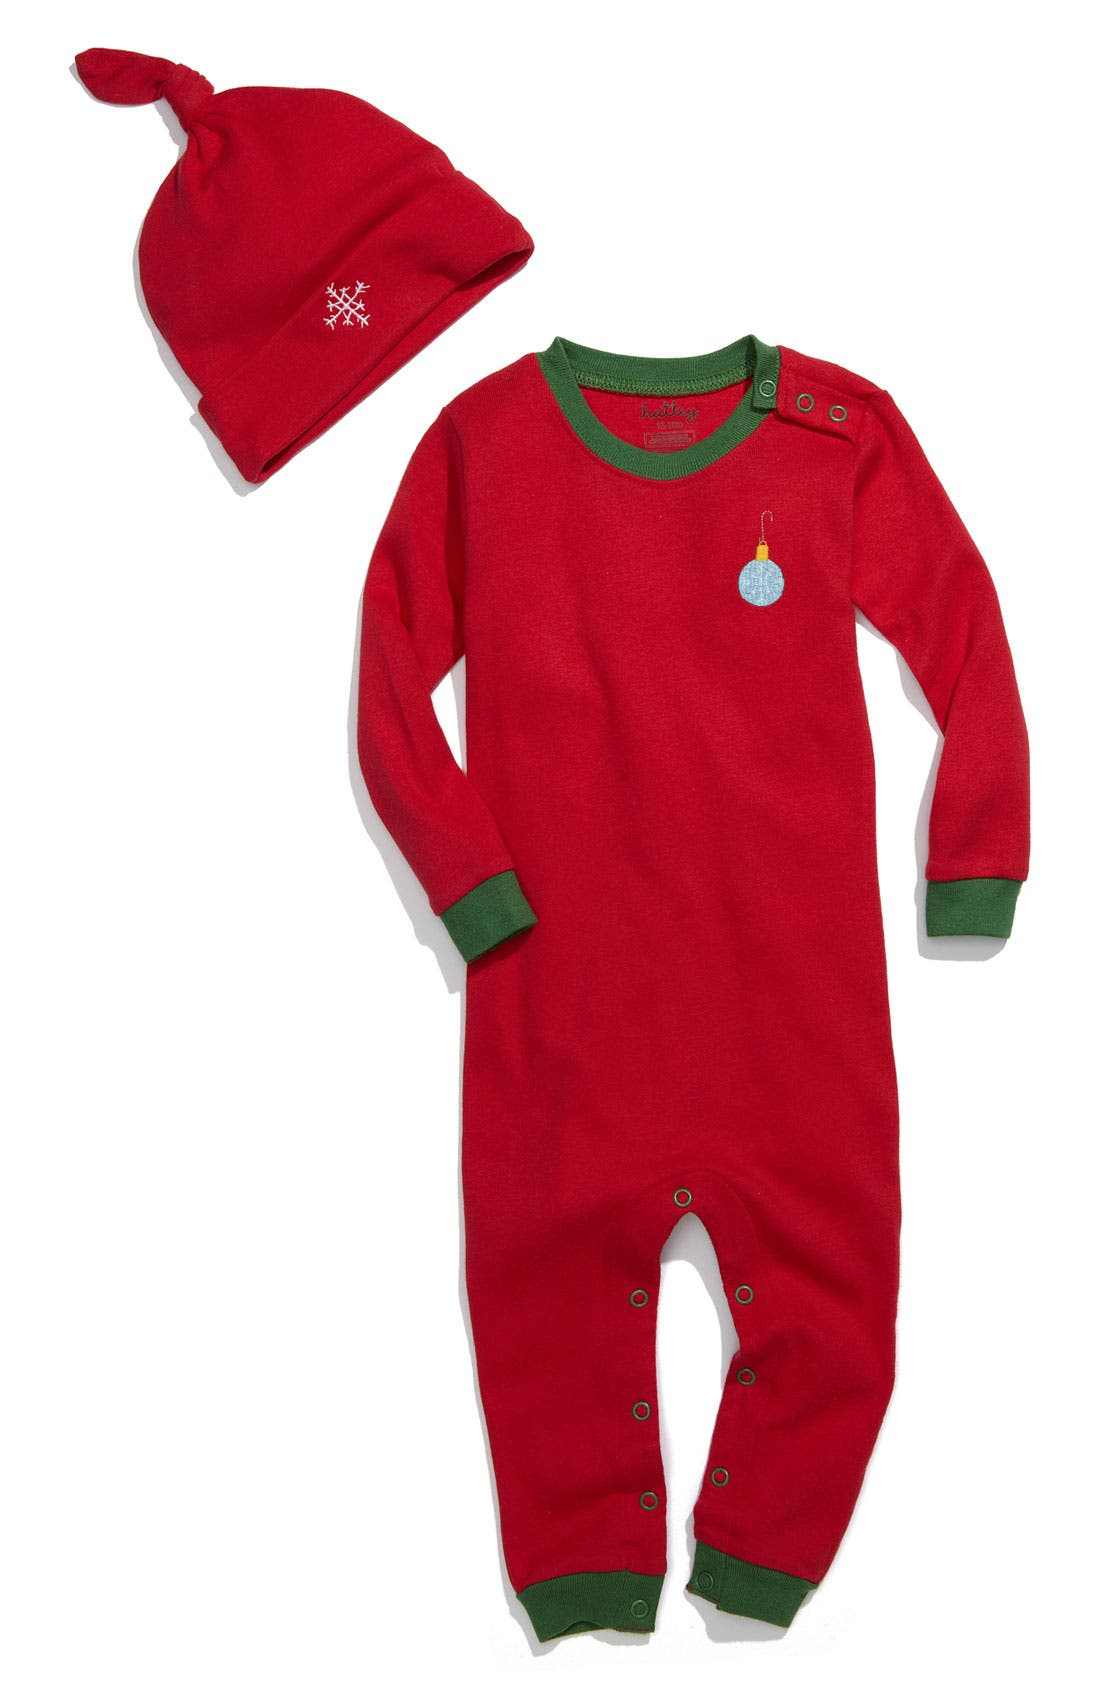 Alternate Image 1 Selected - Hatley Fitted Romper & Hat Set (Infant)